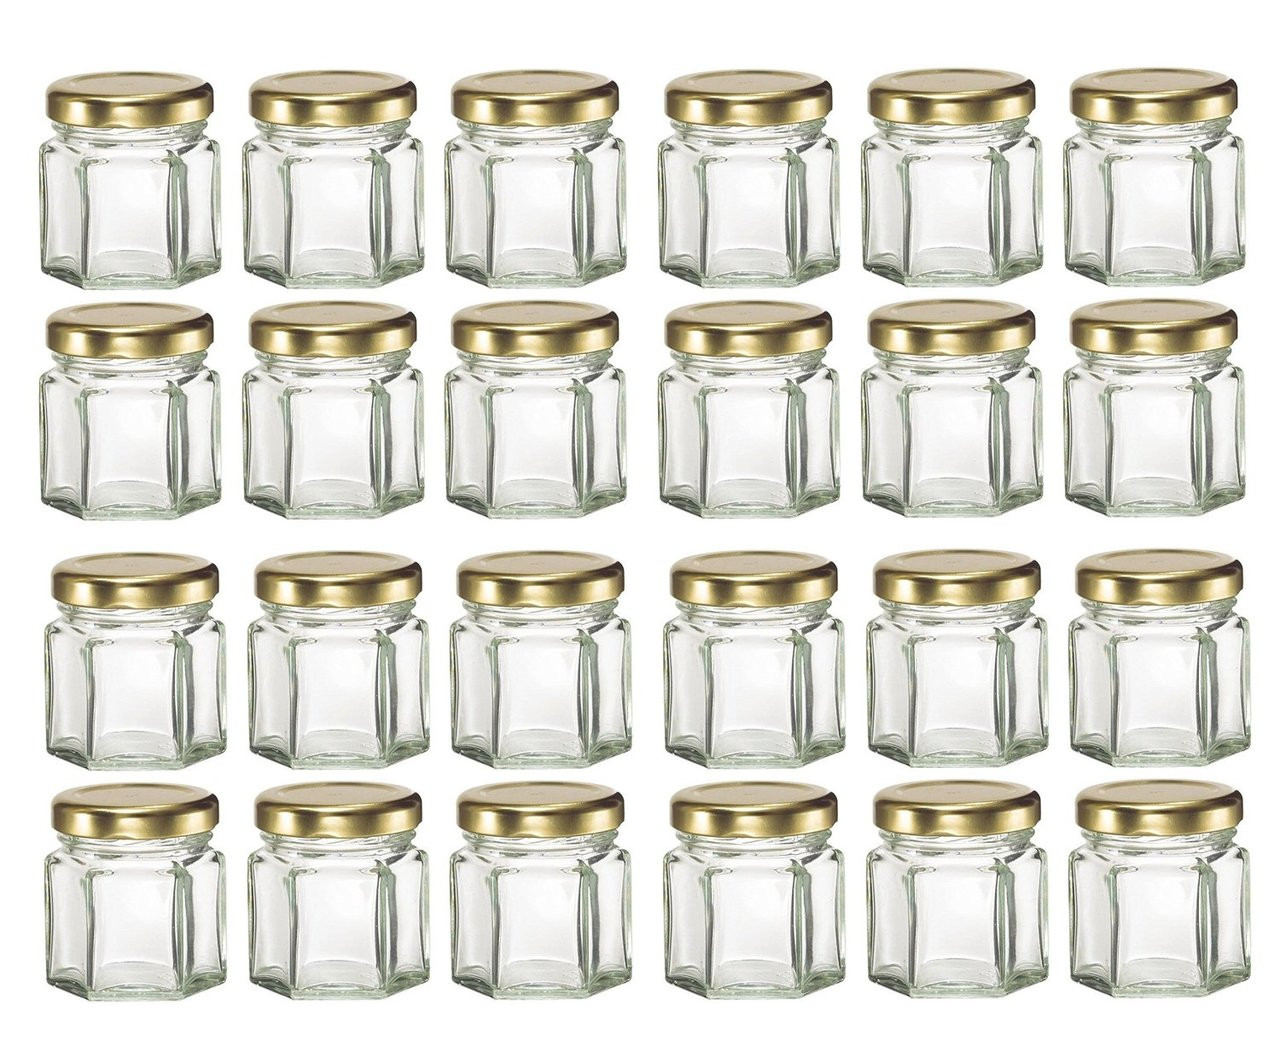 mini hexagon glass jars 1 5 oz with gold lid pack of 24. Black Bedroom Furniture Sets. Home Design Ideas